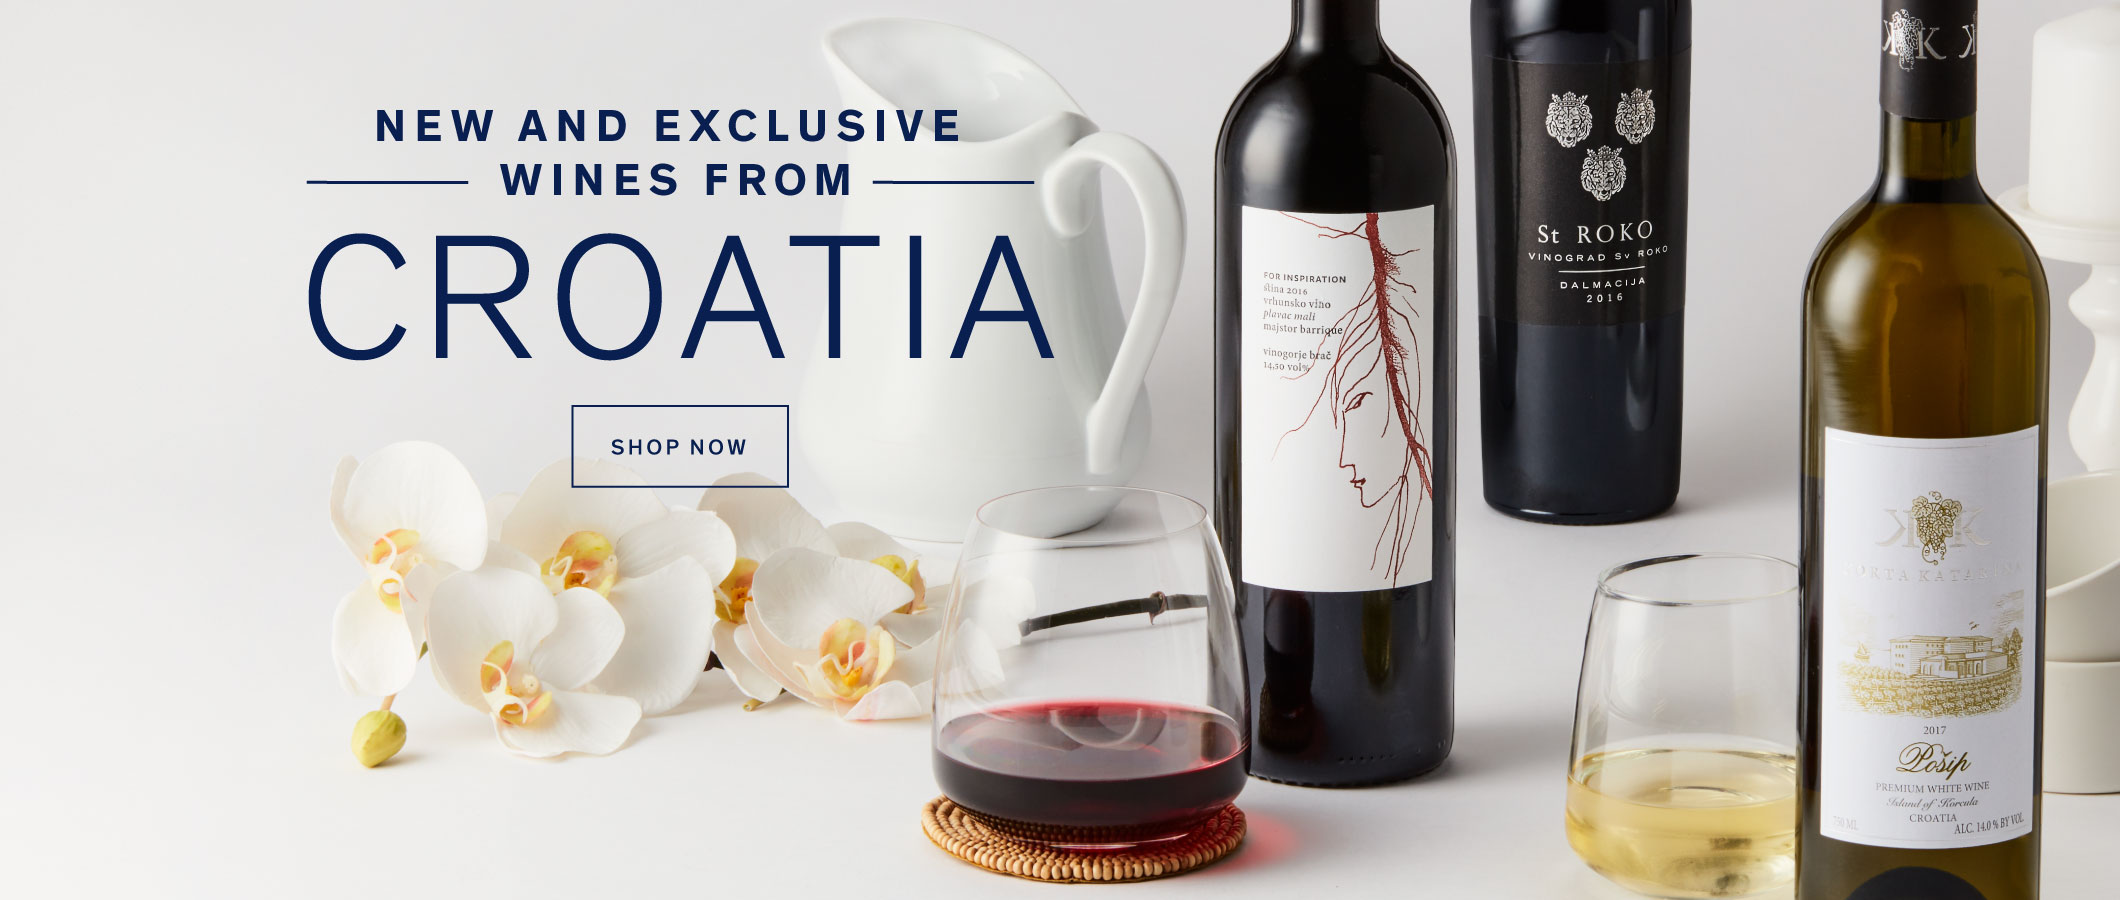 New and Exclusive Wines from Croatia. Shop Now